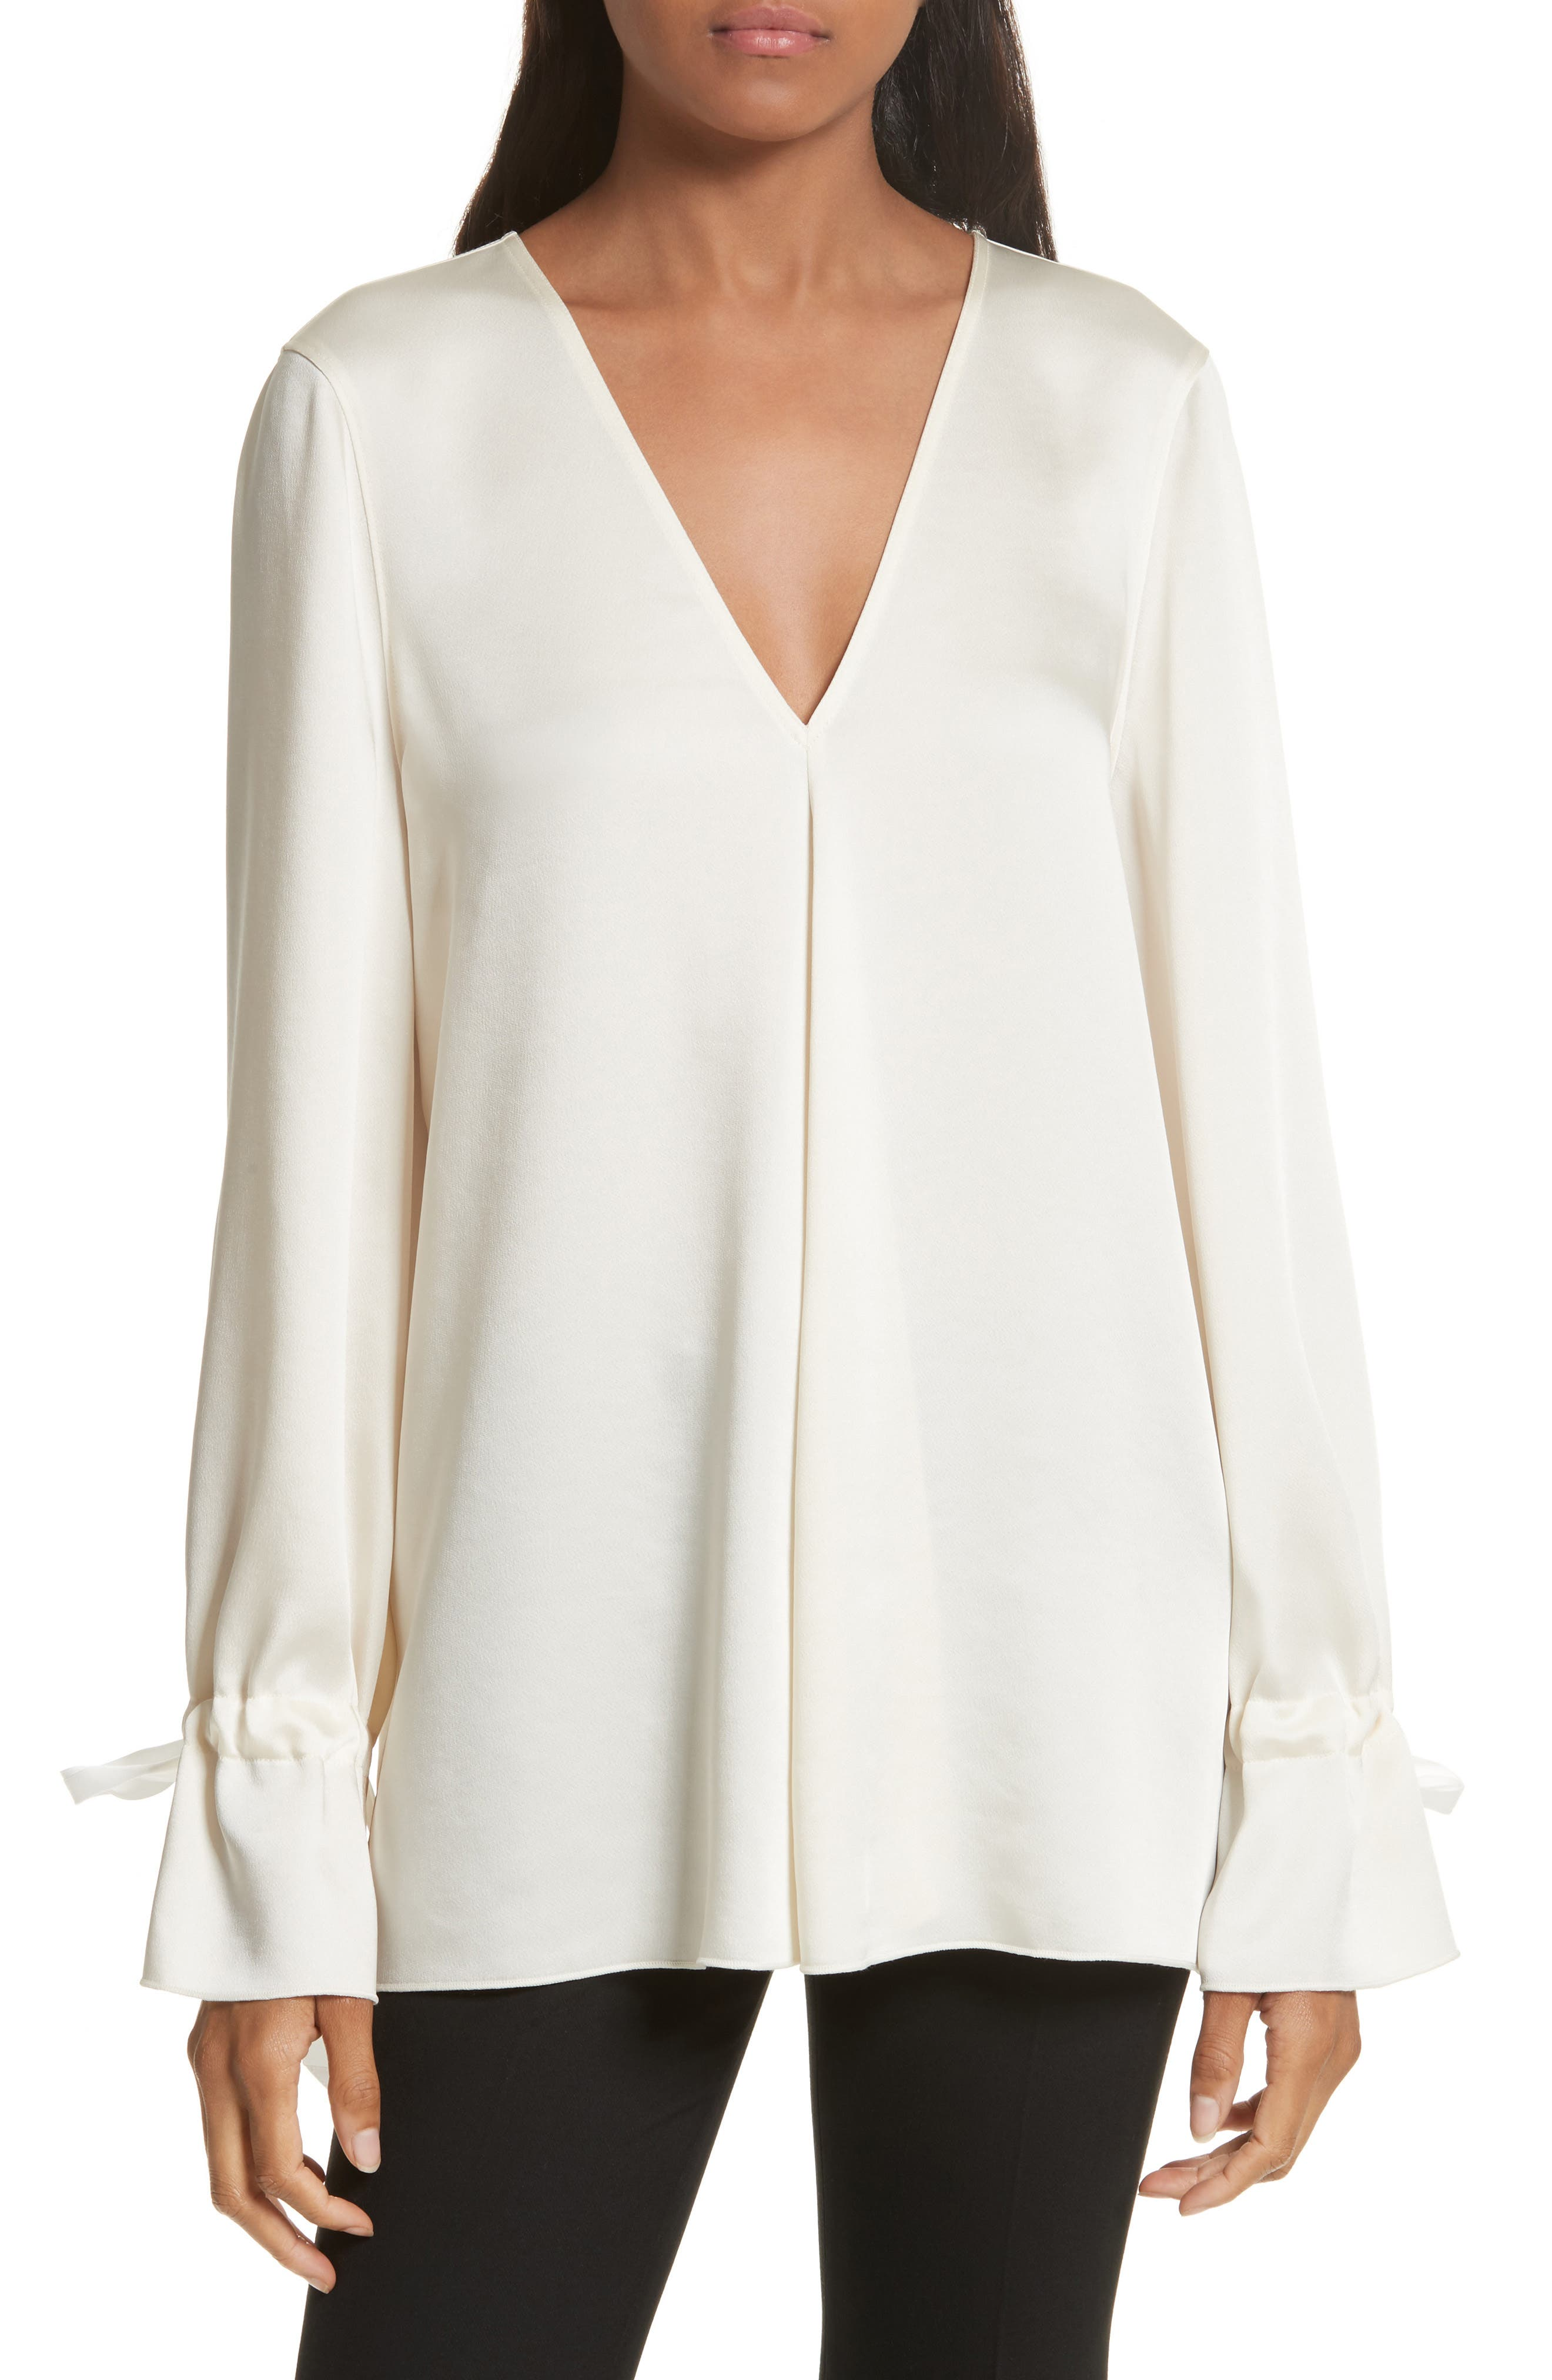 ELIZABETH AND JAMES Adalina Tie Cuff Blouse